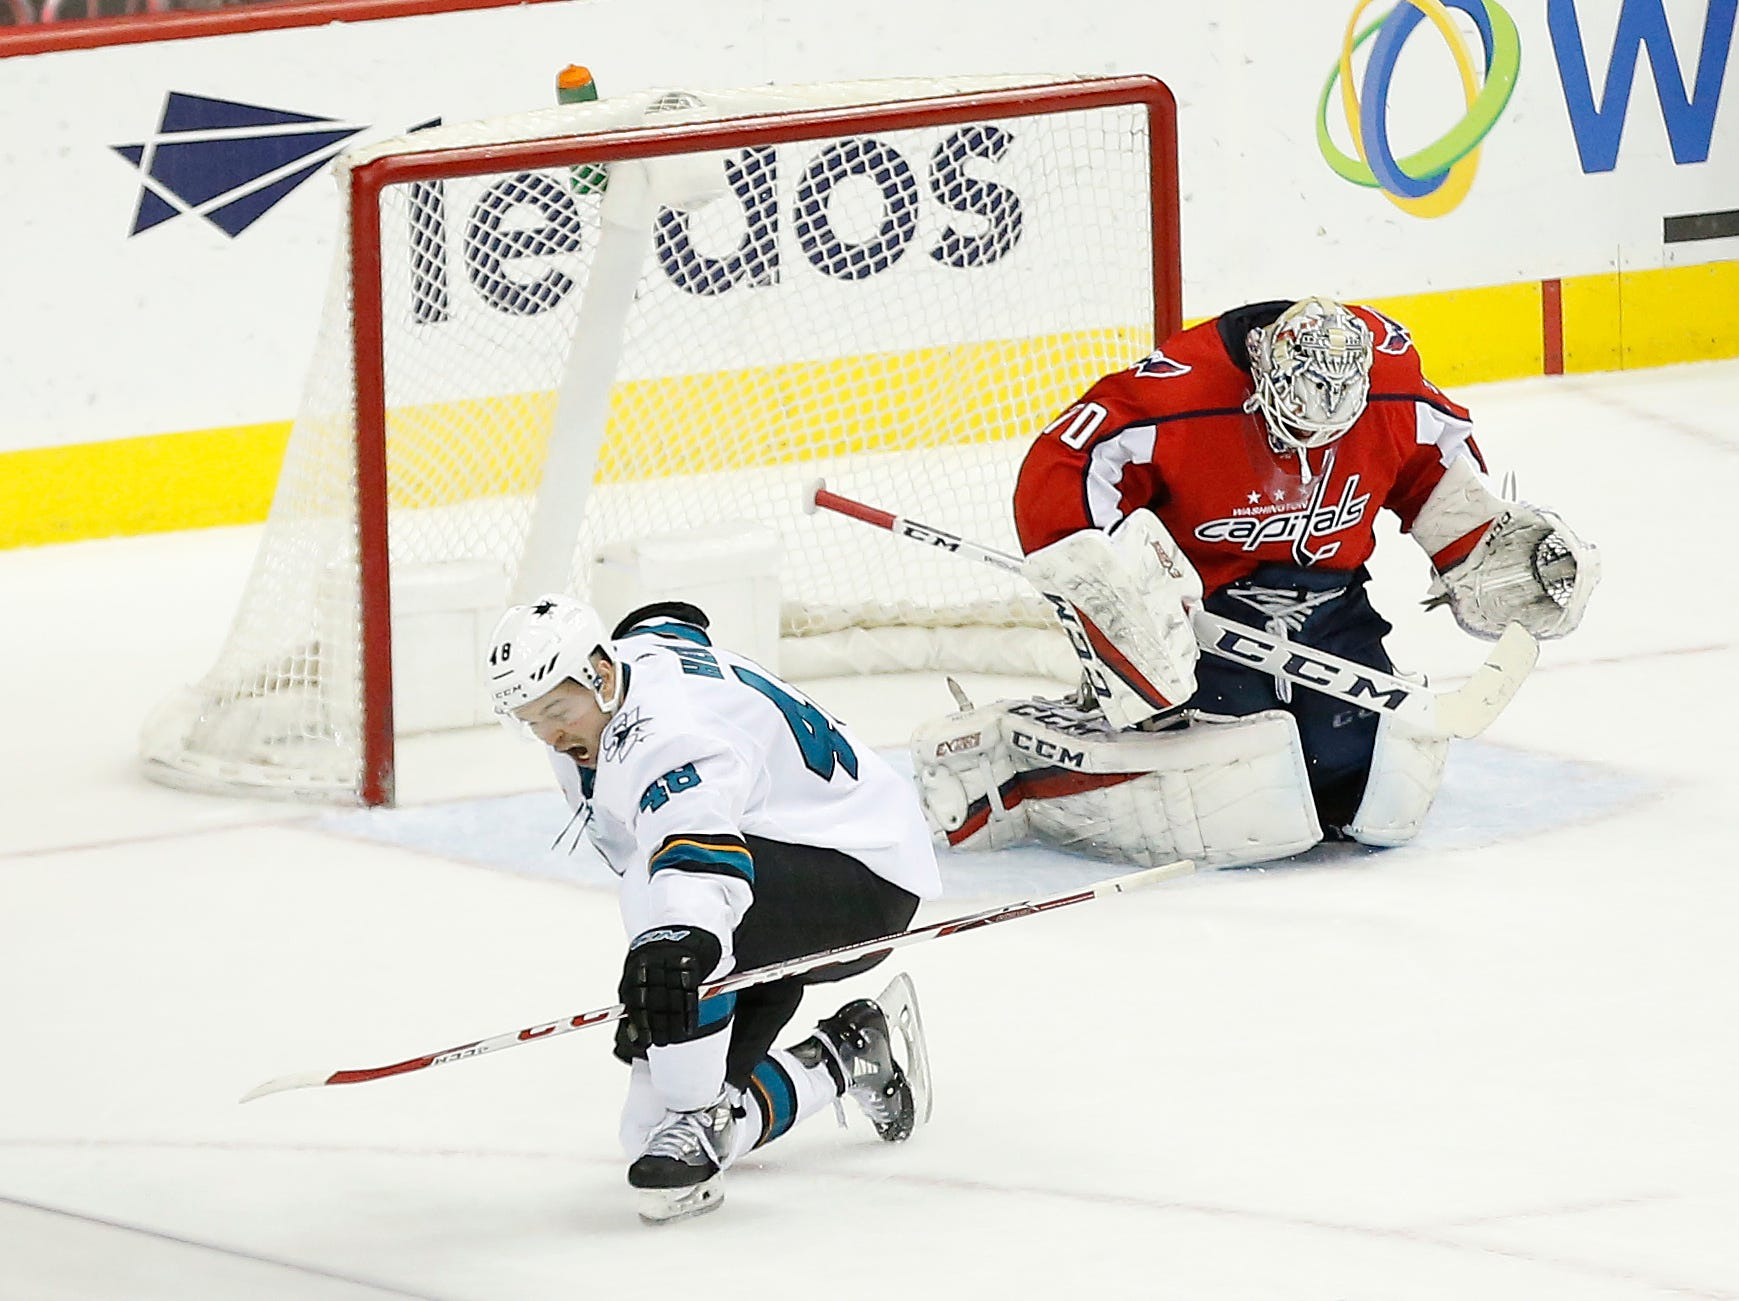 Jan. 22: San Jose Sharks center Tomas Hertl celebrates after scoring the game-winning goal on Washington Capitals goaltender Braden Holtby (70) in overtime at Capital One Arena.